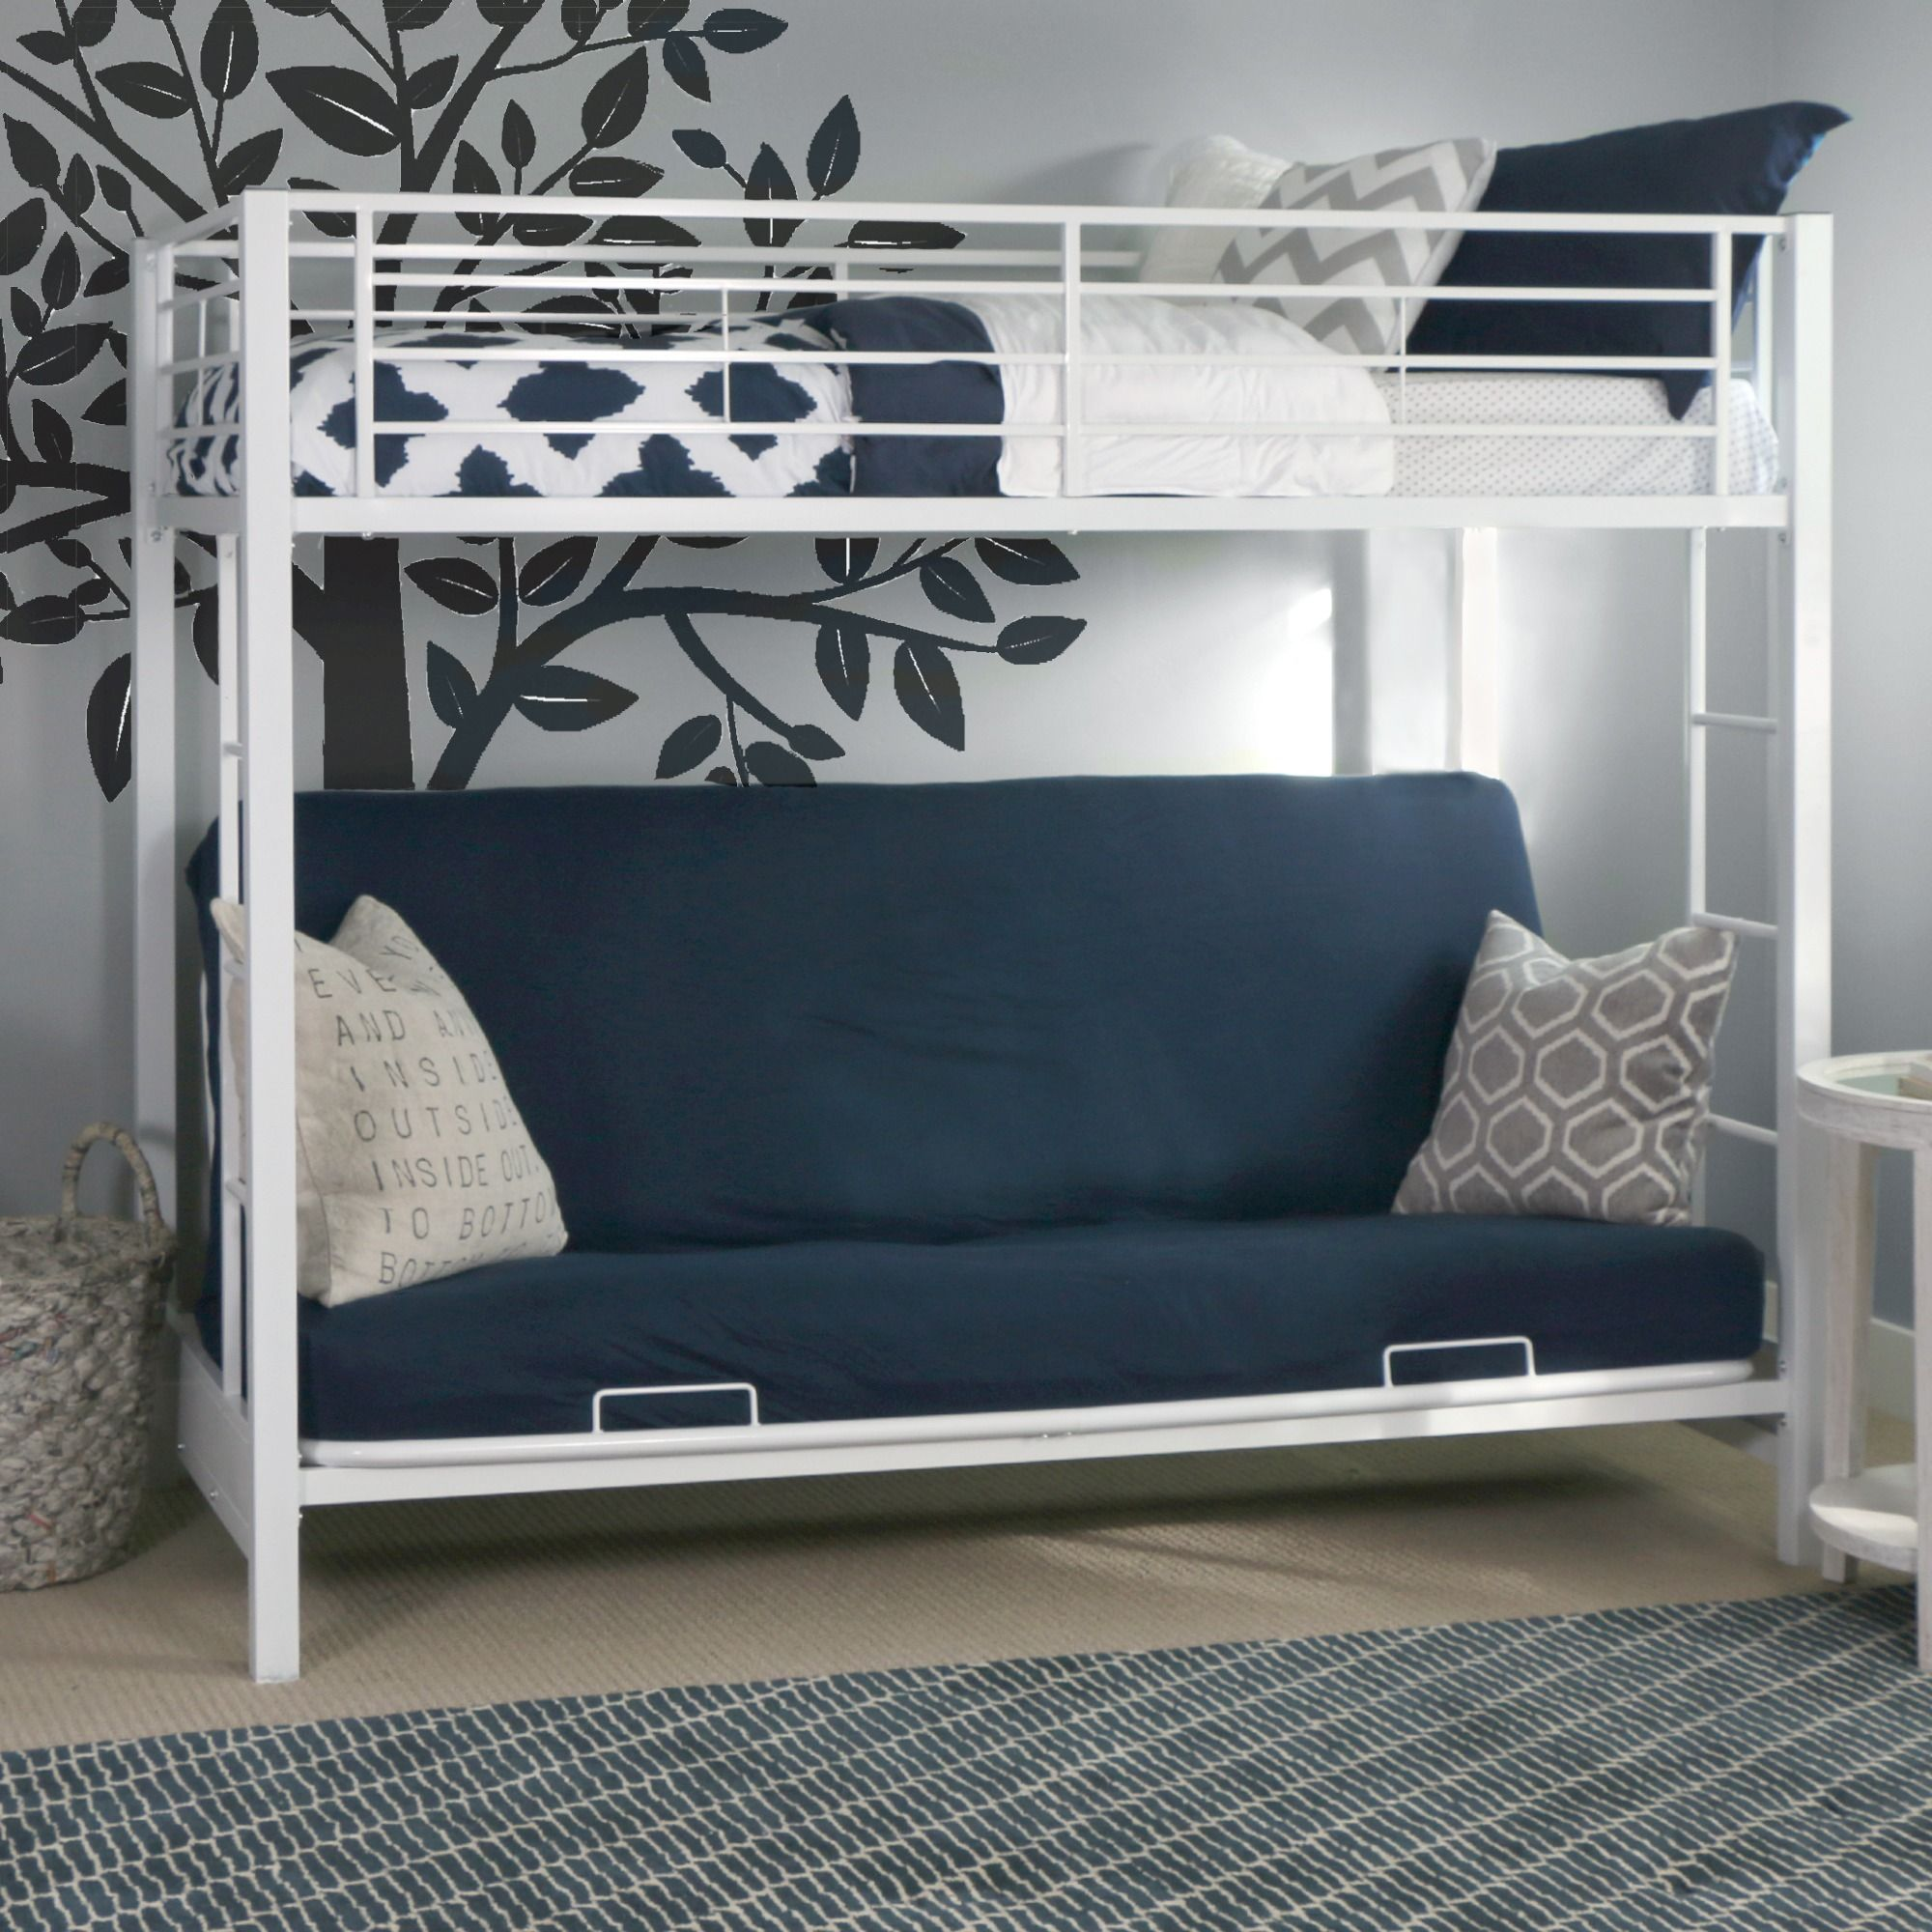 Beloved for its pact foot print this bunk bed is a necessity